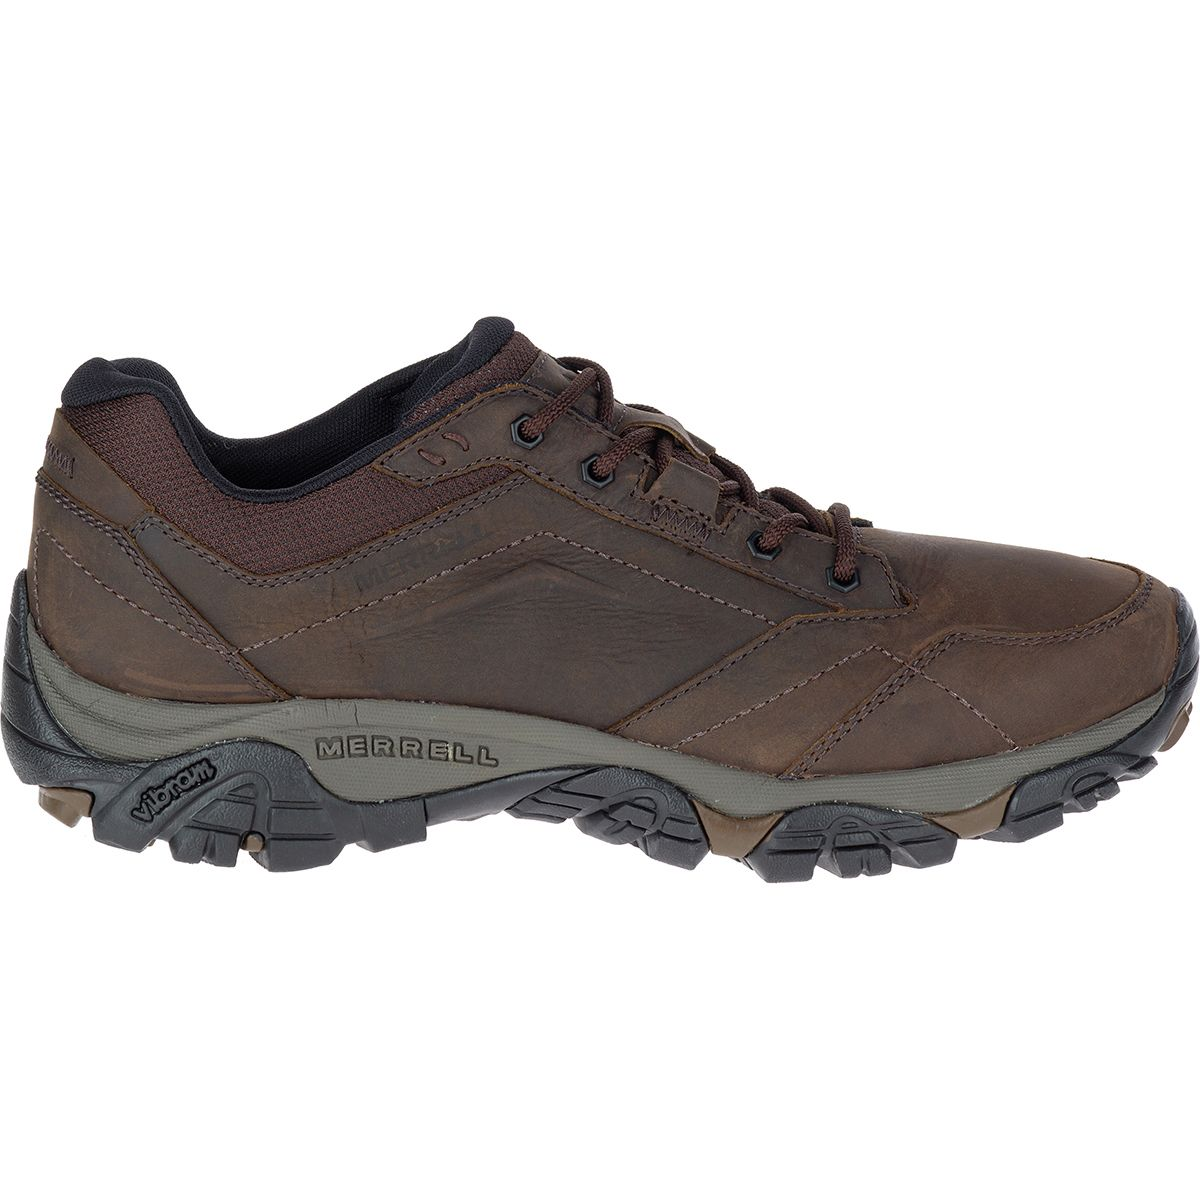 Merrell Moab Adventure Lace Shoe Men's |